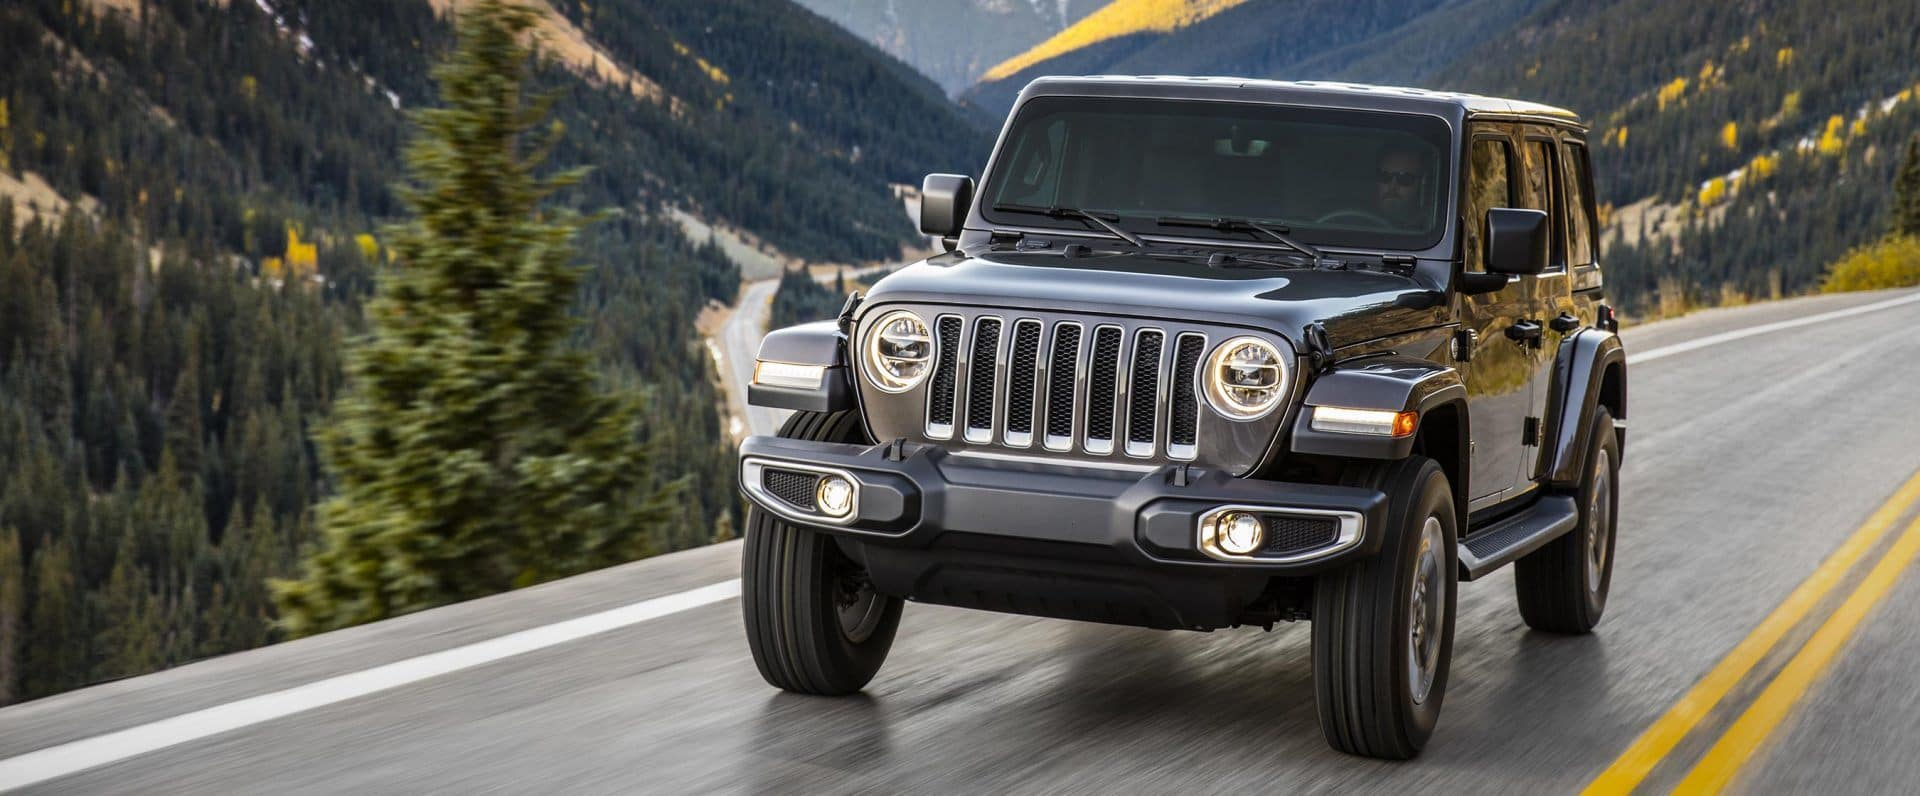 Jeep Dealers Near Me >> Jeep Dealer Near Me Lansing Il New Car Specials Deals